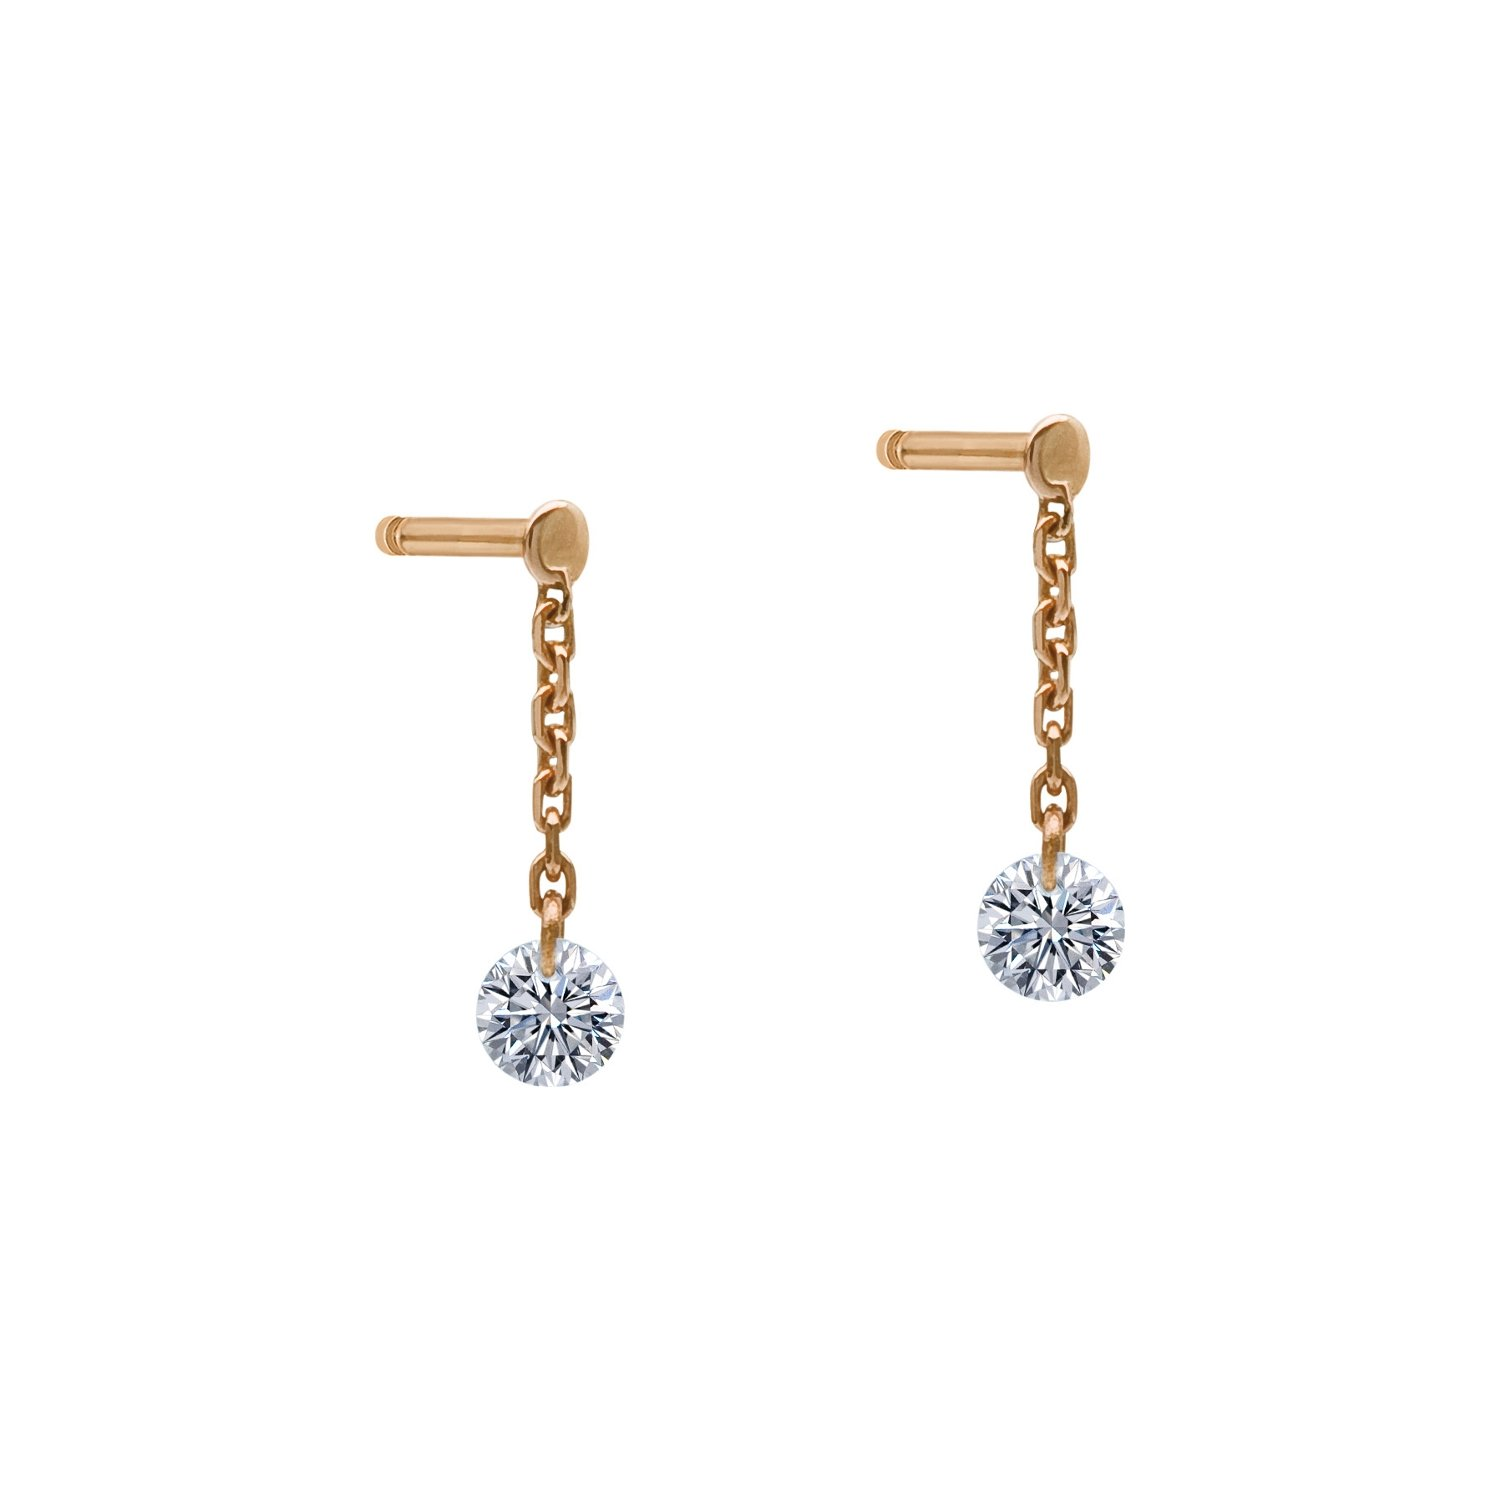 Boucles d'oreilles pendantes LA BRUNE & LA BLONDE 360° en or rose et diamants de 0.40ct